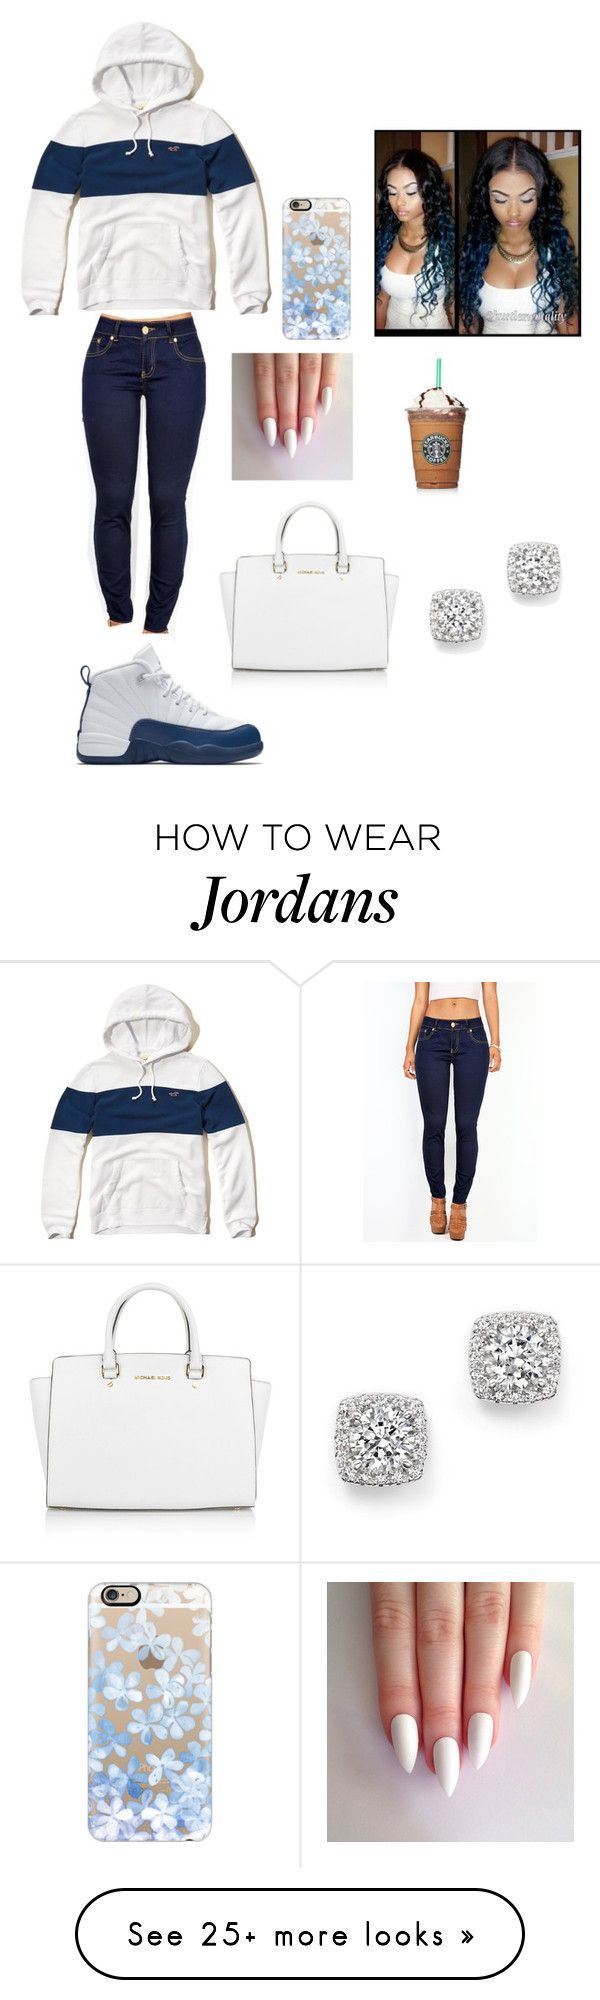 """Need more ideas "" by fam0us-e on Polyvore featuring Hollister Co., NIKE, Bloomingdale's, Casetify and Michael Kors"